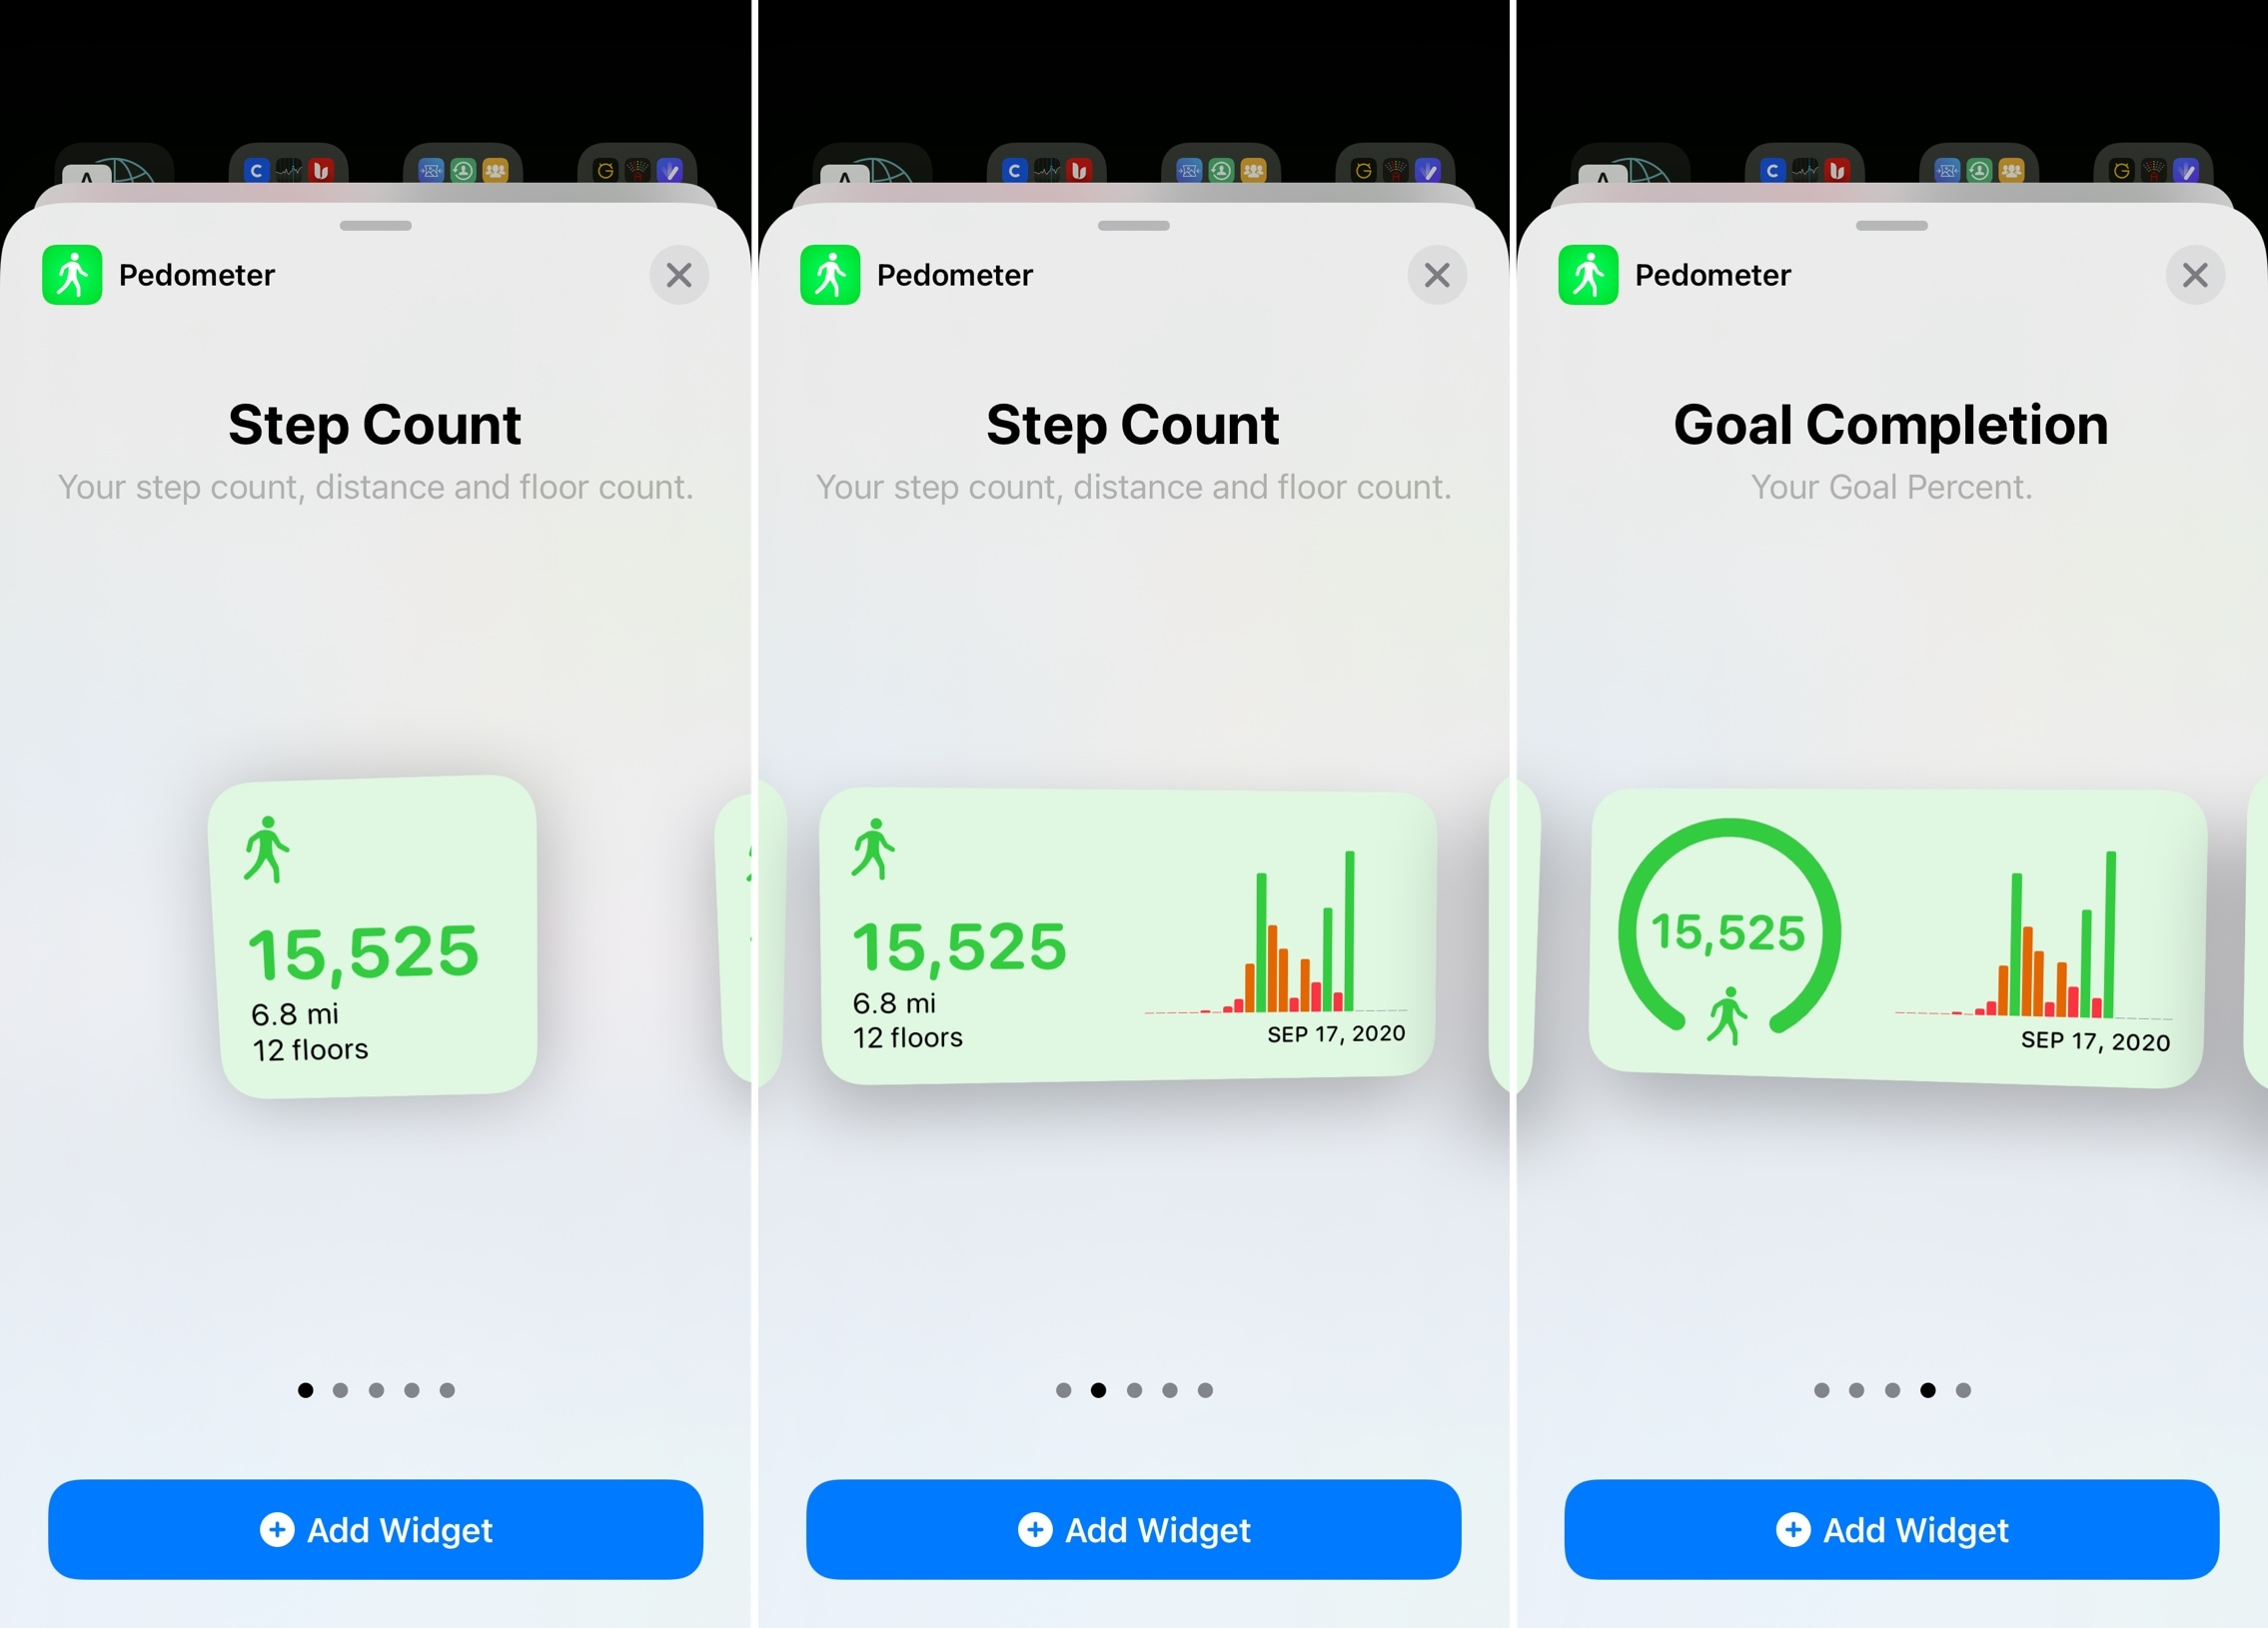 Pedometer Home Screen Widgets for iPhone